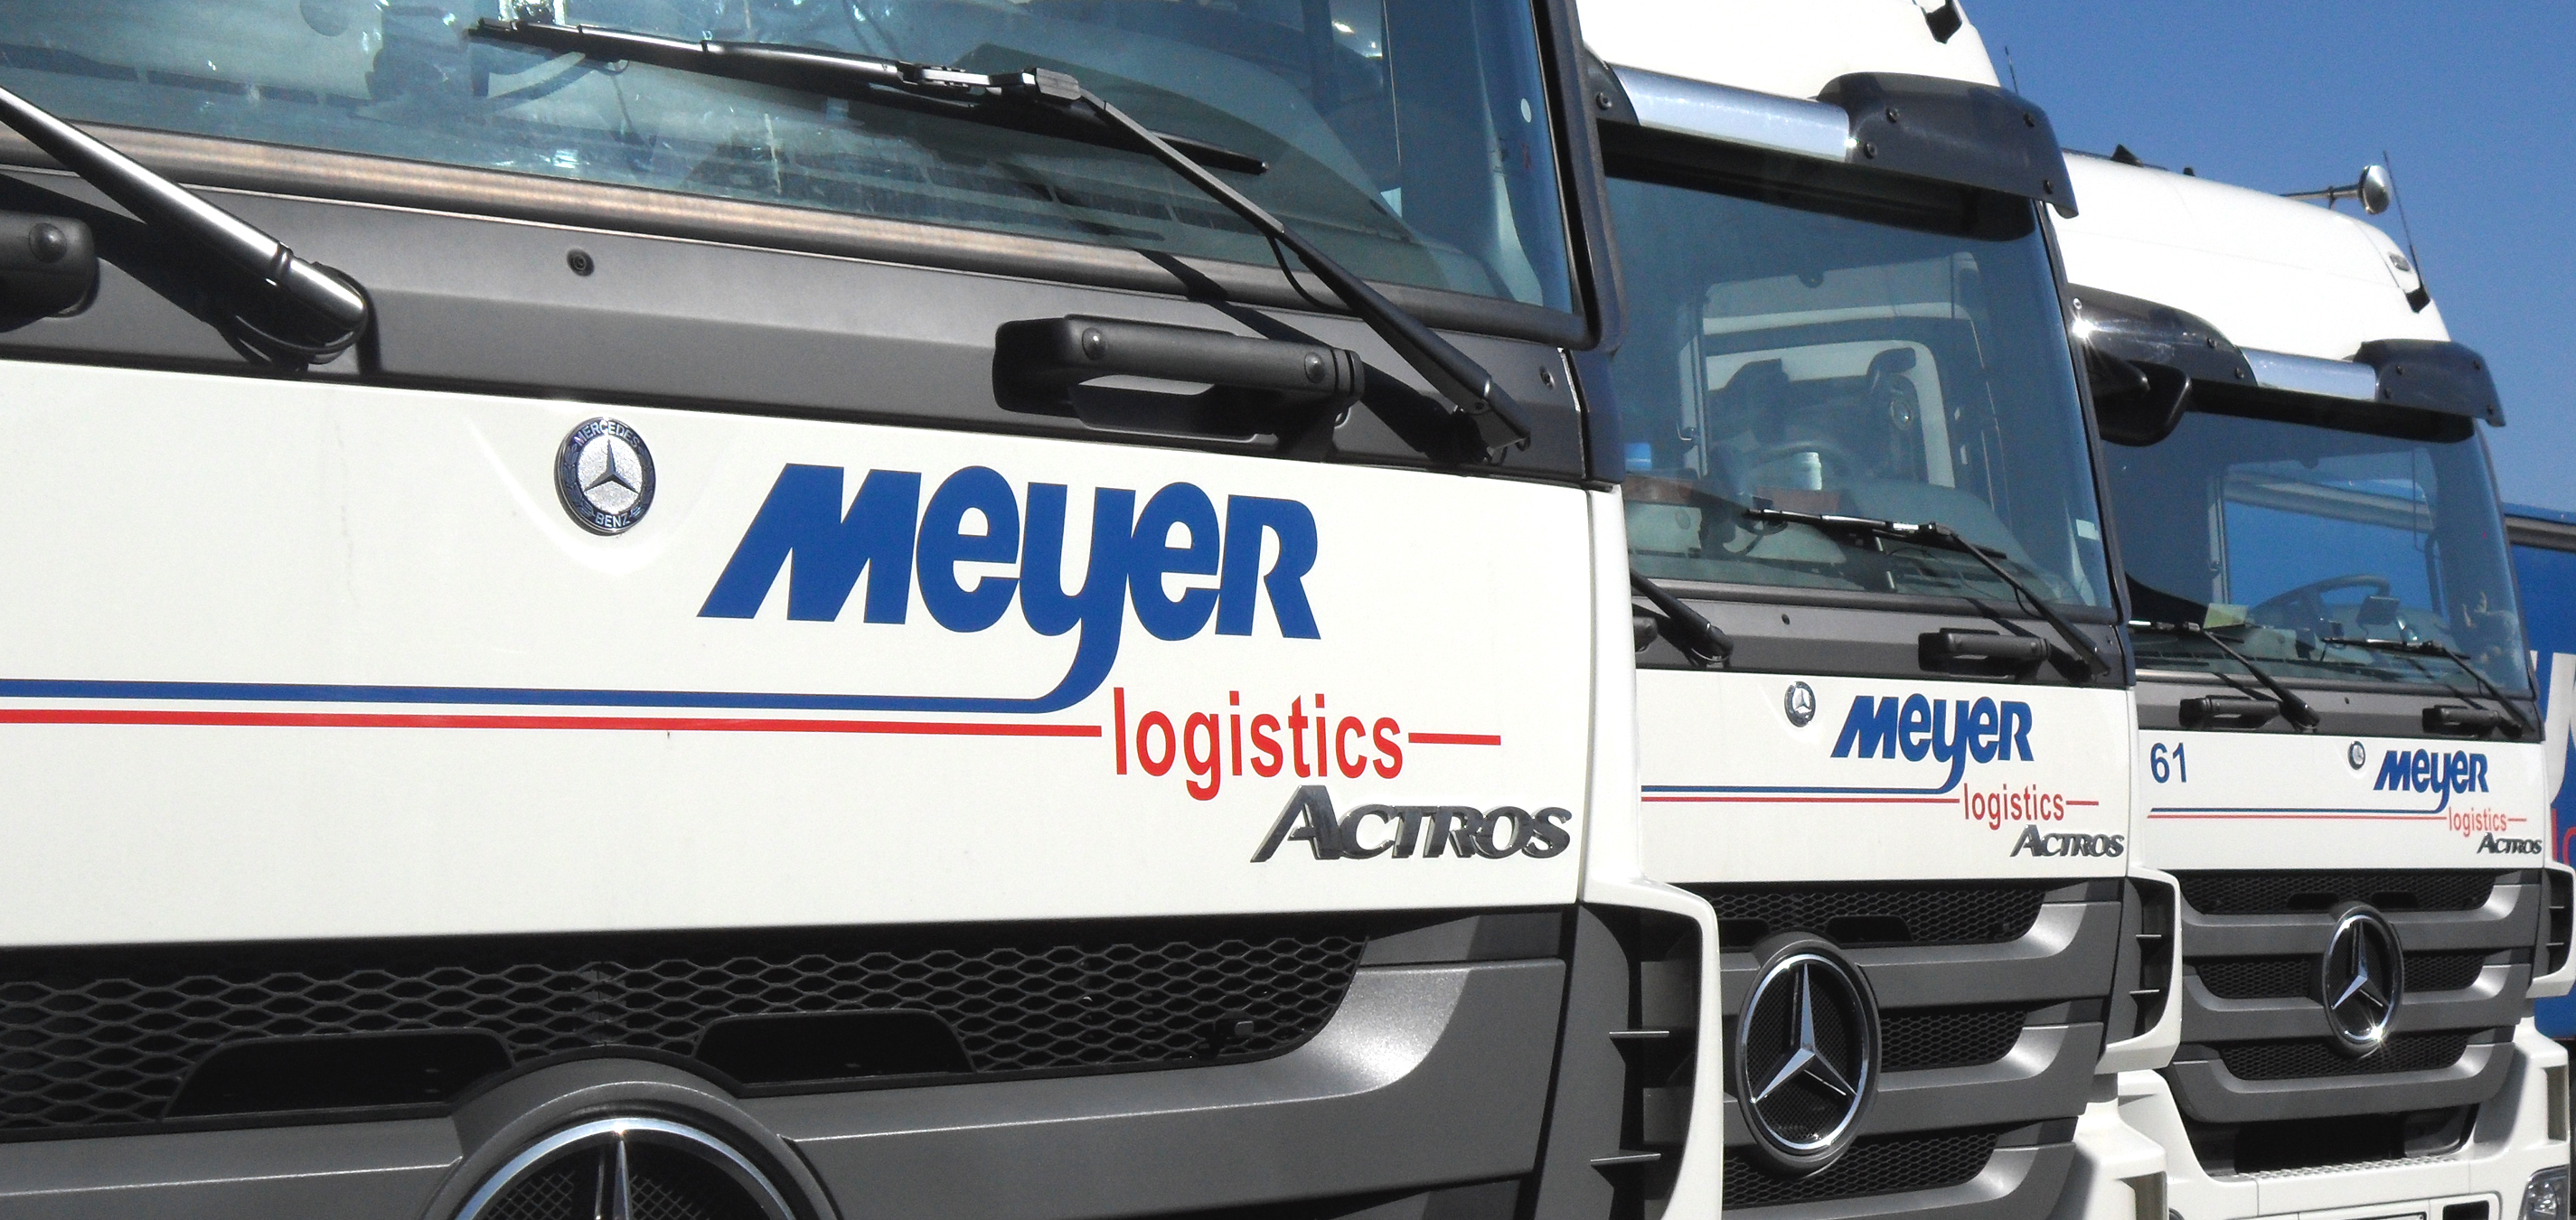 LKW Meyer logistics